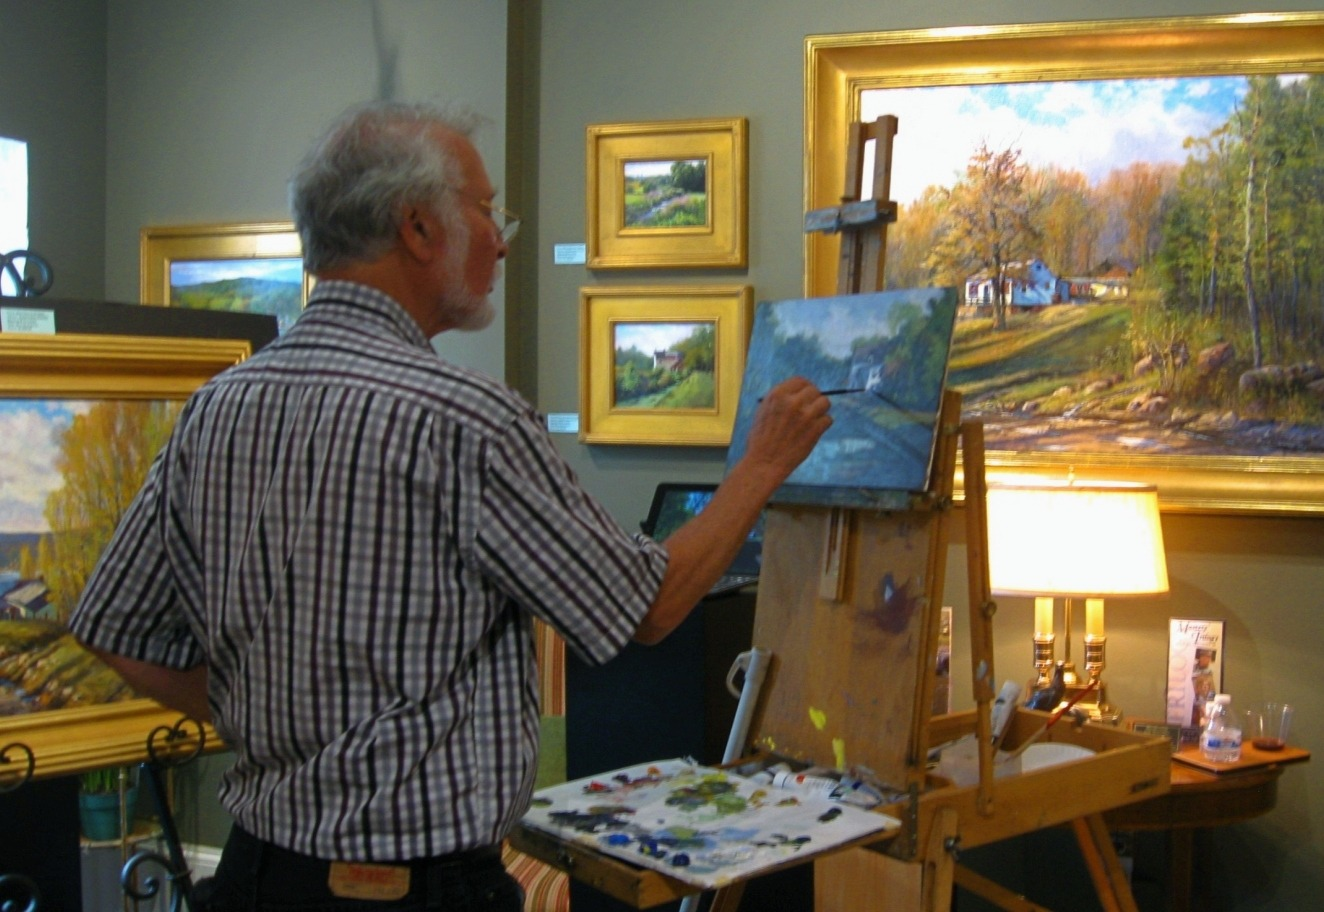 Artists Joseph Orr painting at his easel